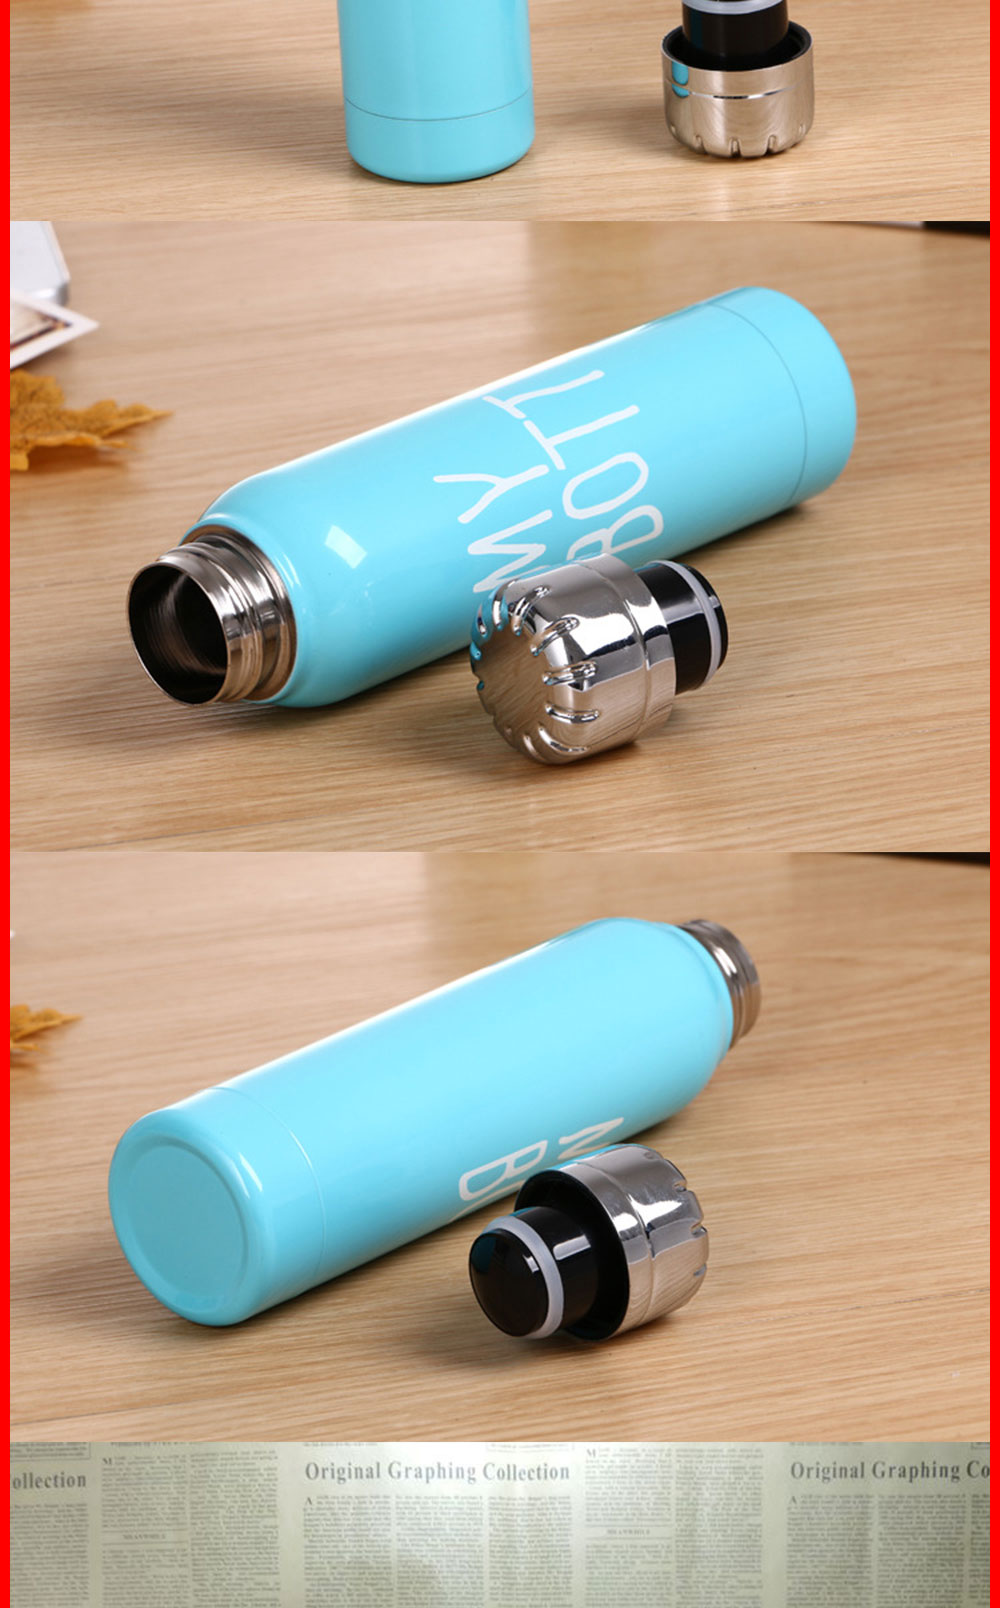 My Bottle Water Bottle Stainless Steel Water Bottle Thermos Cup Slim Vacuum Flask